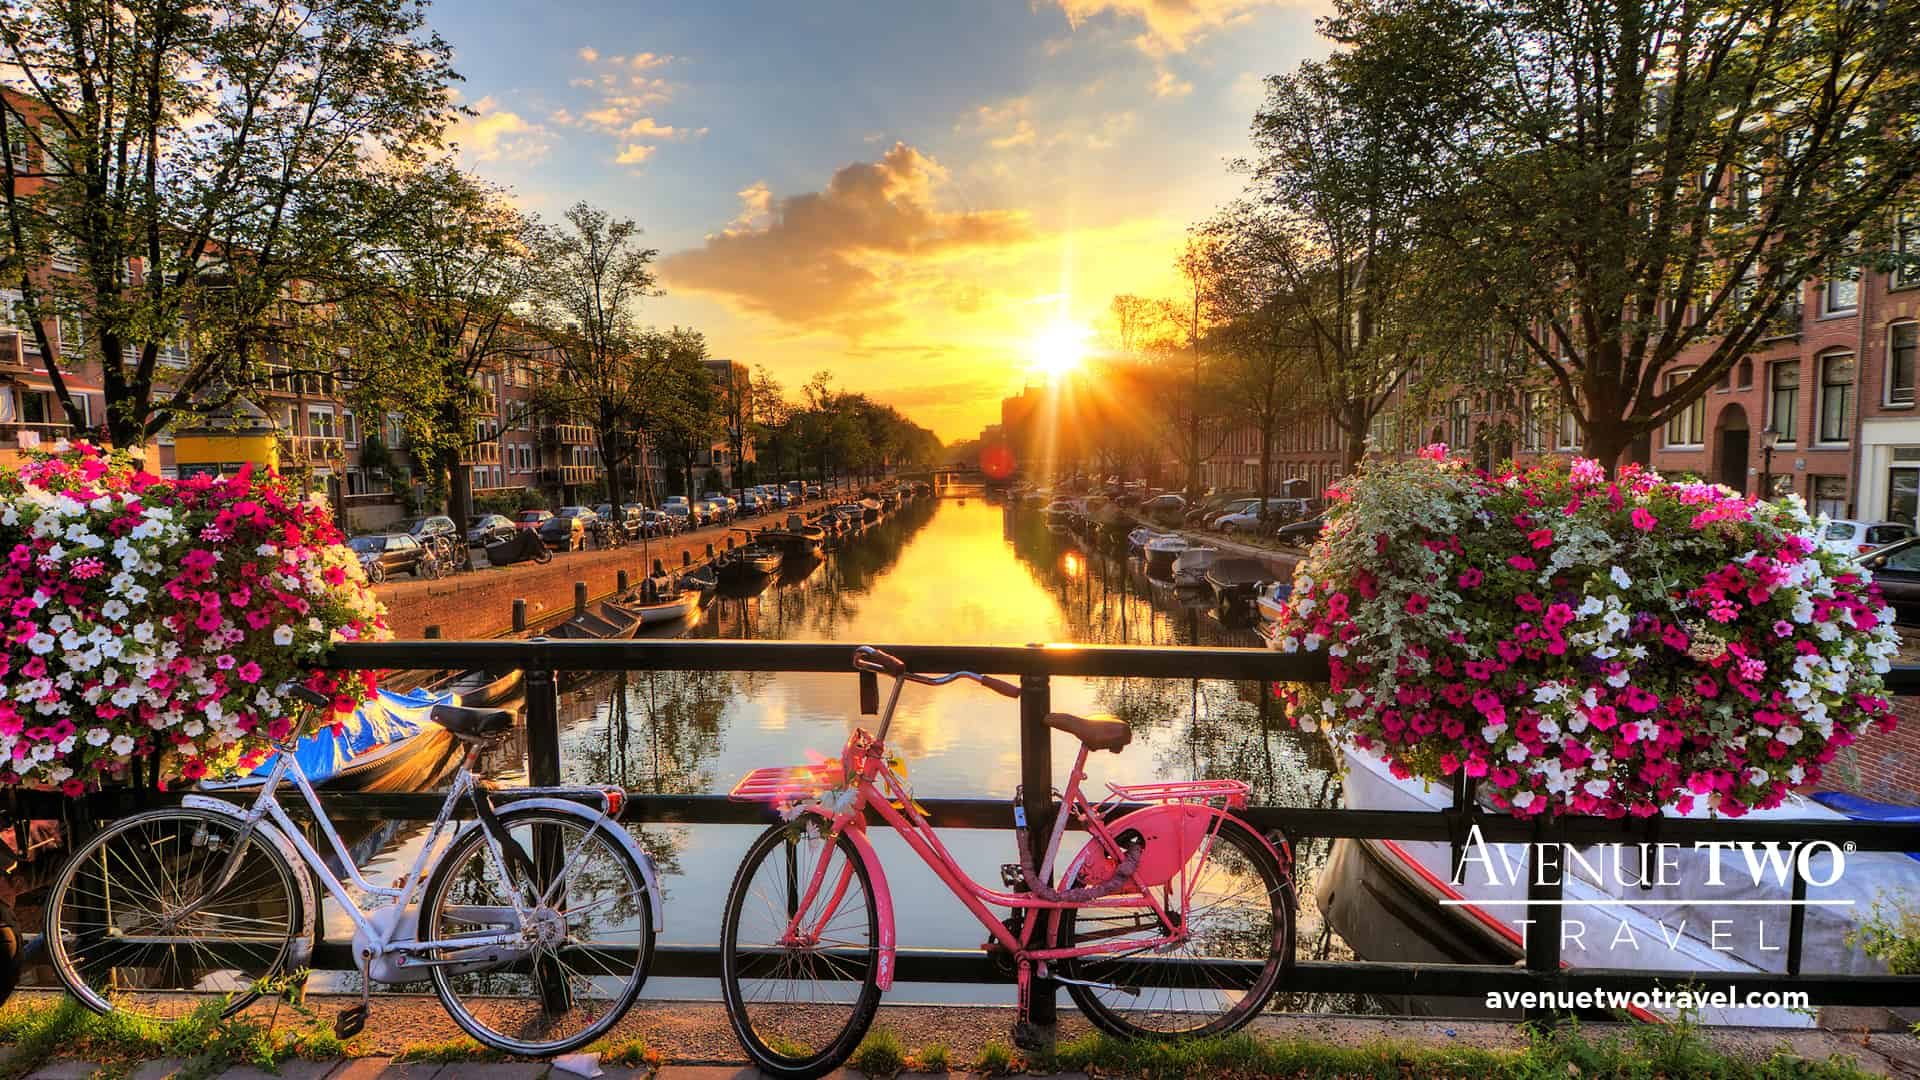 A2T background image of sunrise over Amsterdam, The Netherlands, with flowers and bicycles on the bridge in spring